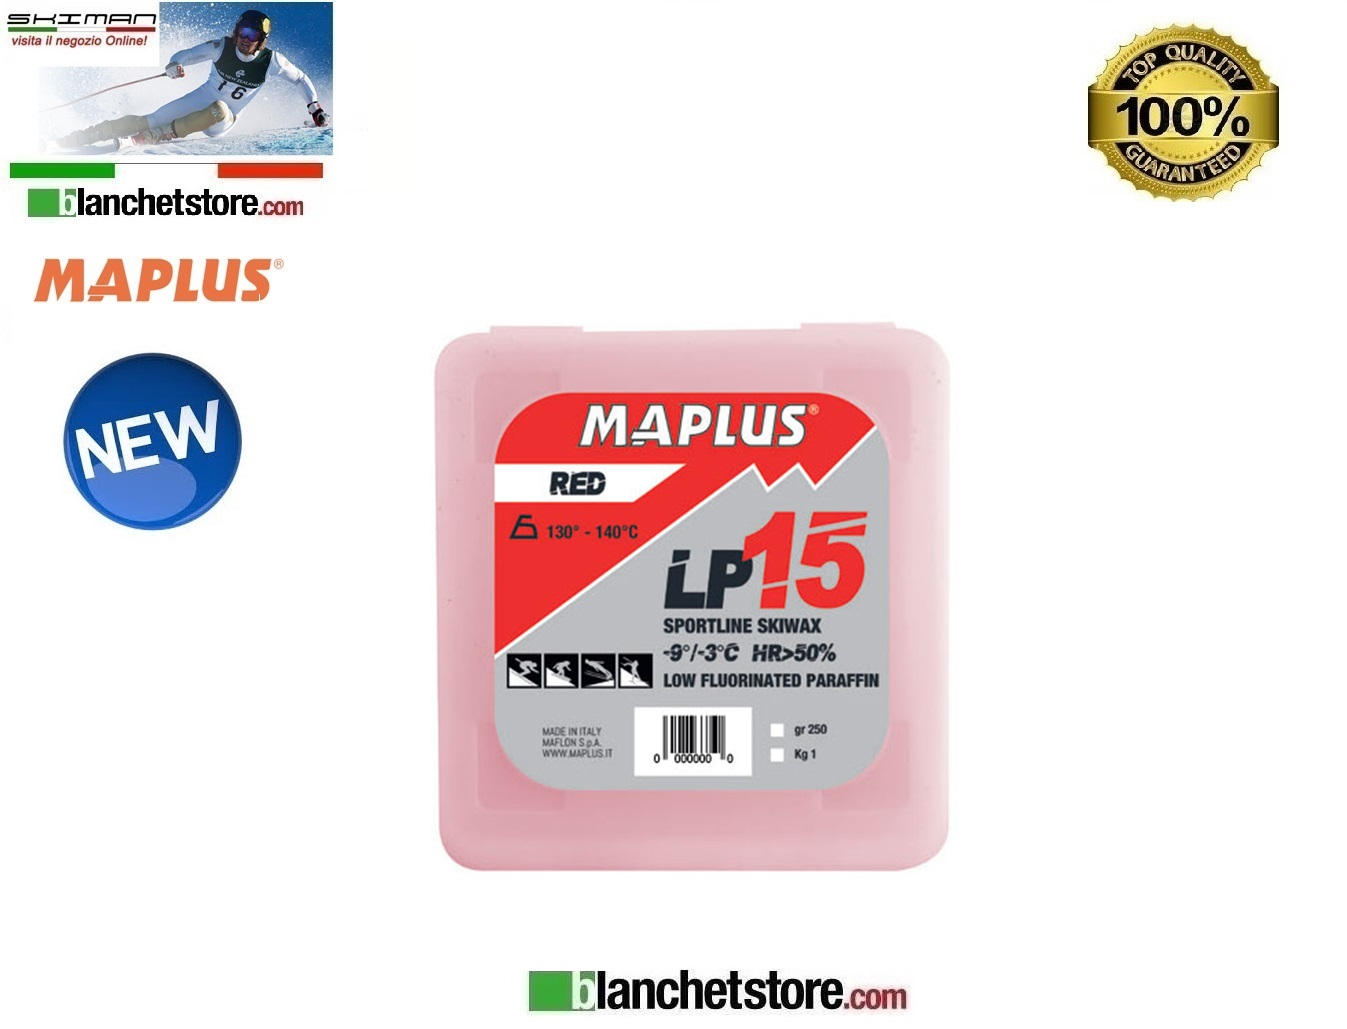 SCIOLINA MAPLUS LOW FLUO LP 15 RED Conf 250 gr